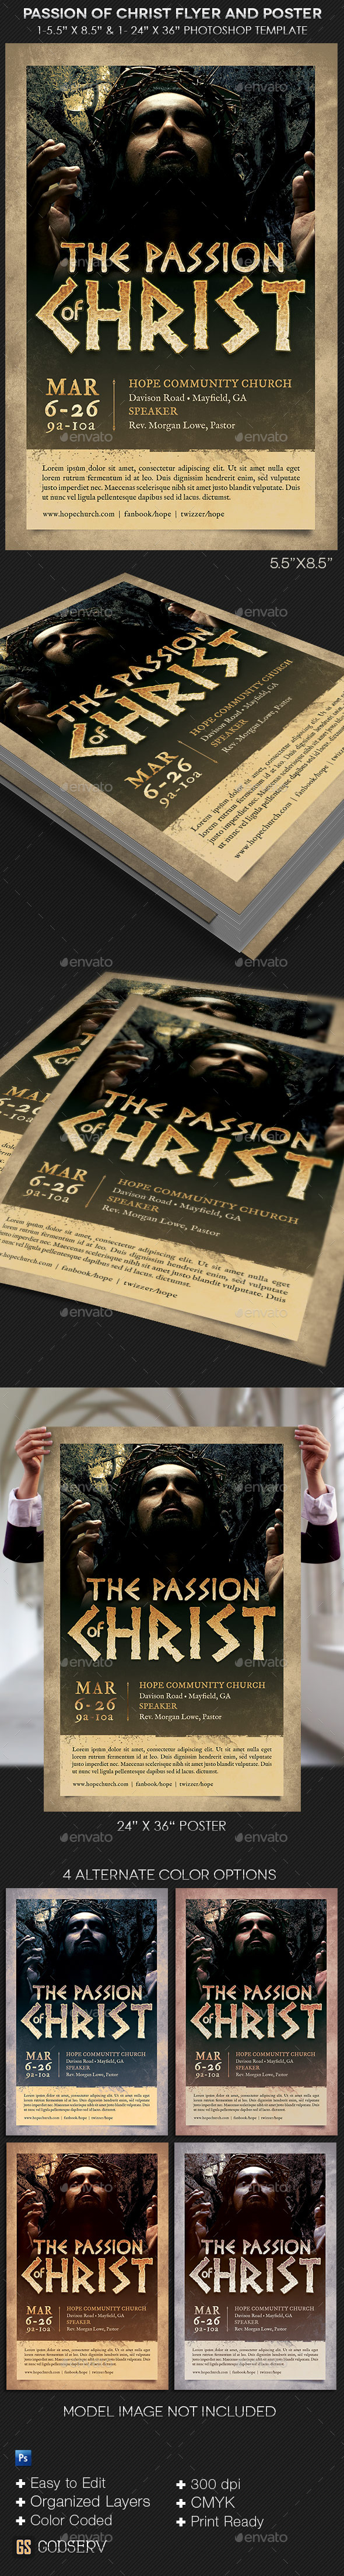 passion of christ flyer and poster template graphicmule. Black Bedroom Furniture Sets. Home Design Ideas